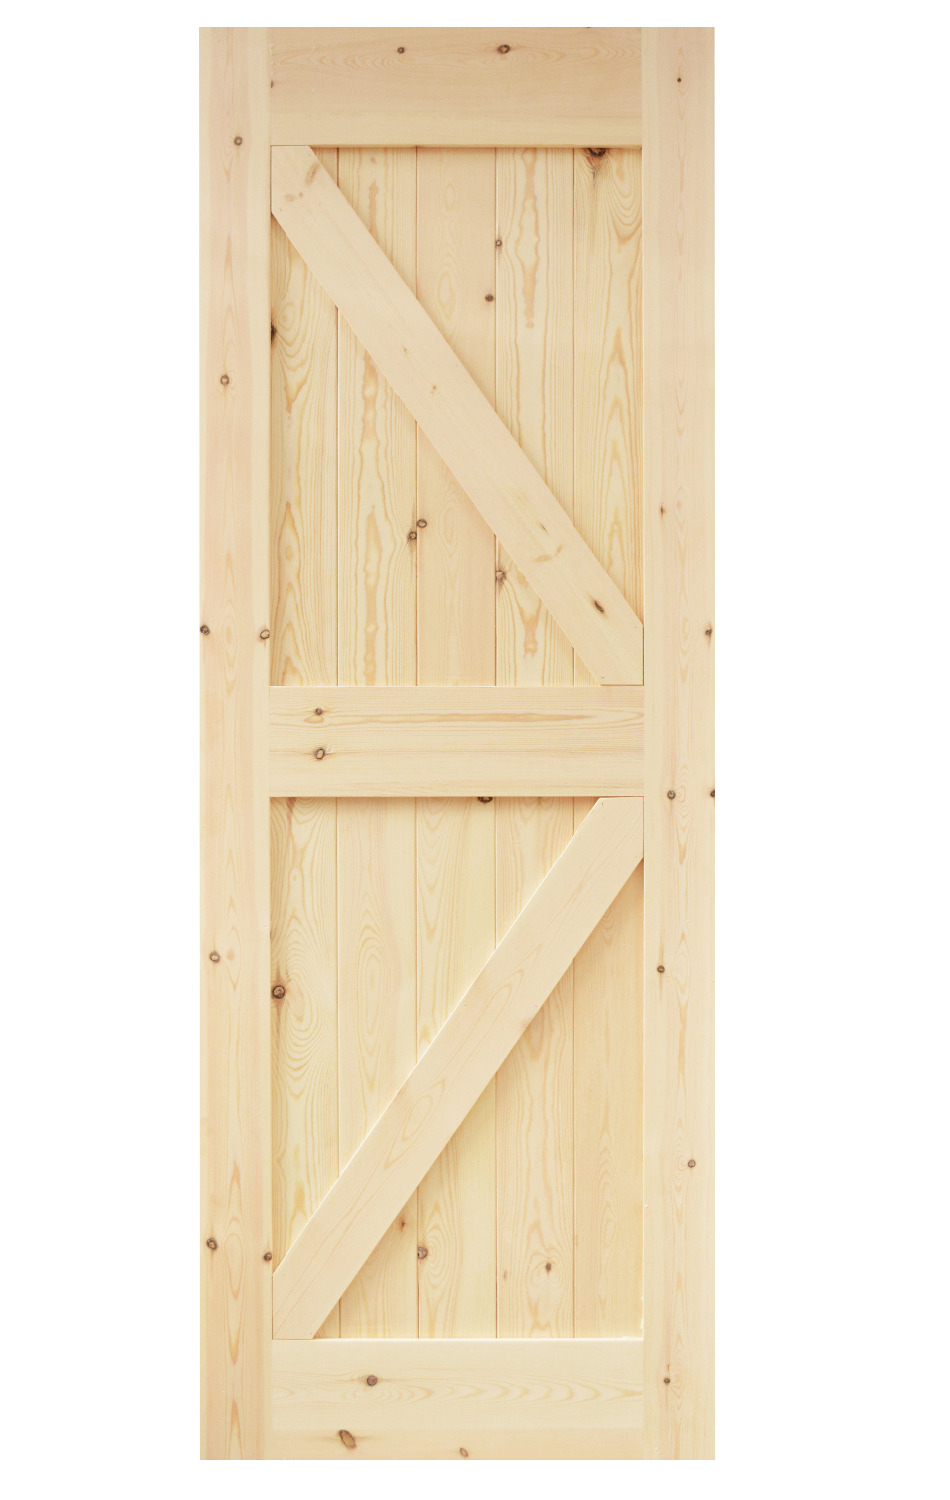 DIYHD 30 In84 In Pine Knotty Sliding Barn Wood Door Slab Two-side Arrow Shape Barn Door Slab (Unfinished)